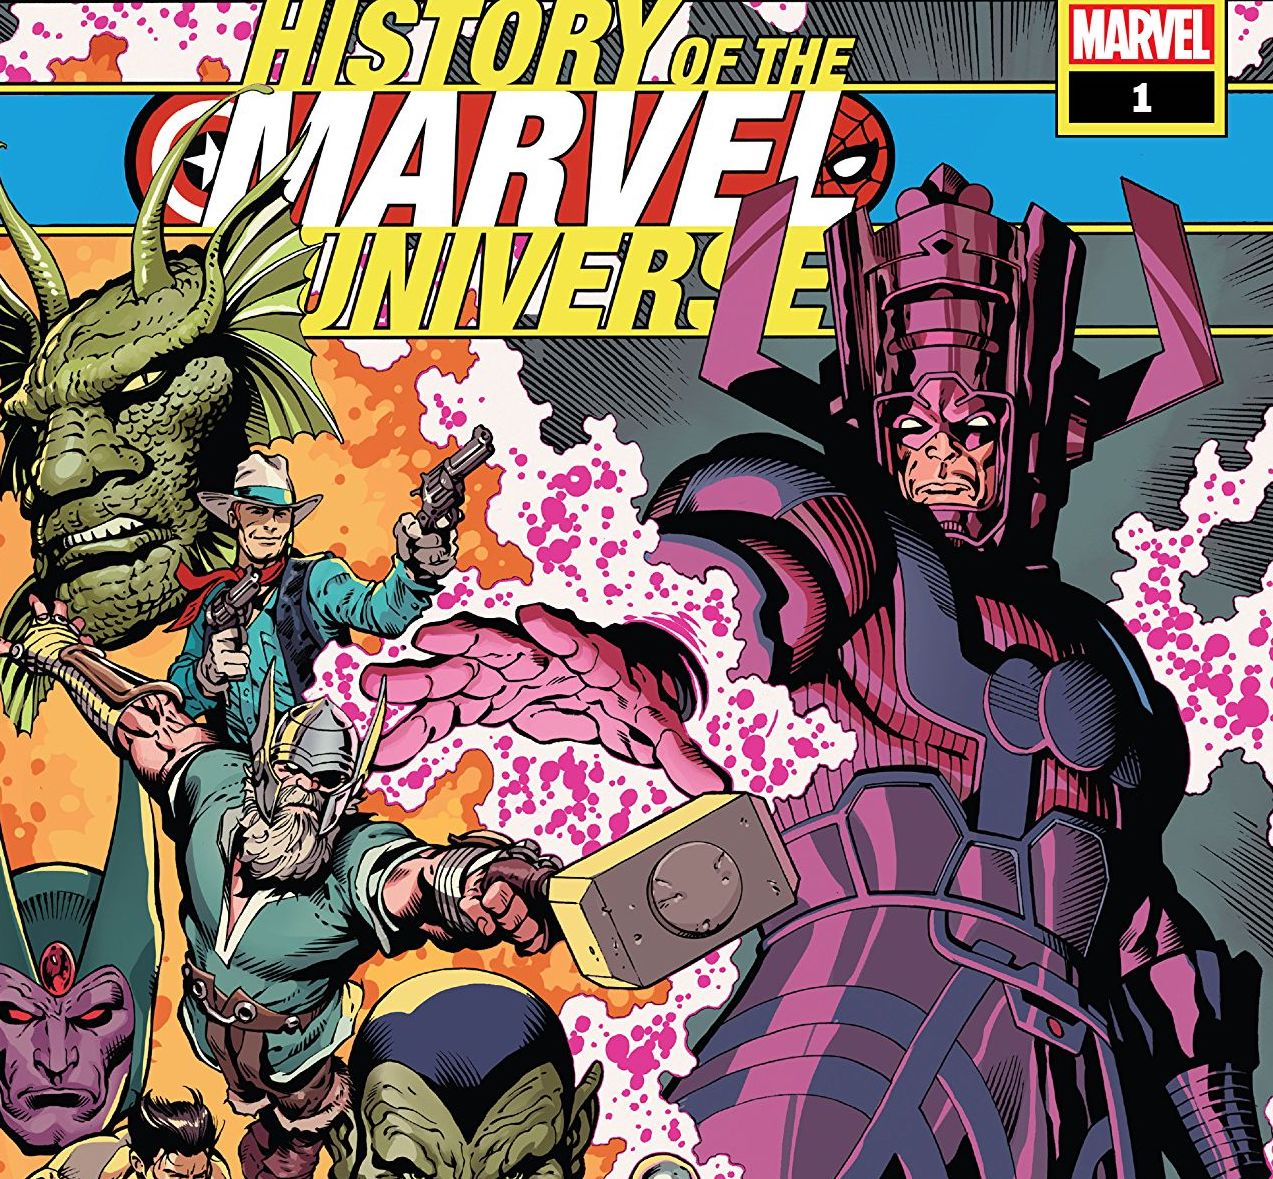 Mark Waid and Javier Rodriguez take us through millions of years of Marvel history in one miniseries.